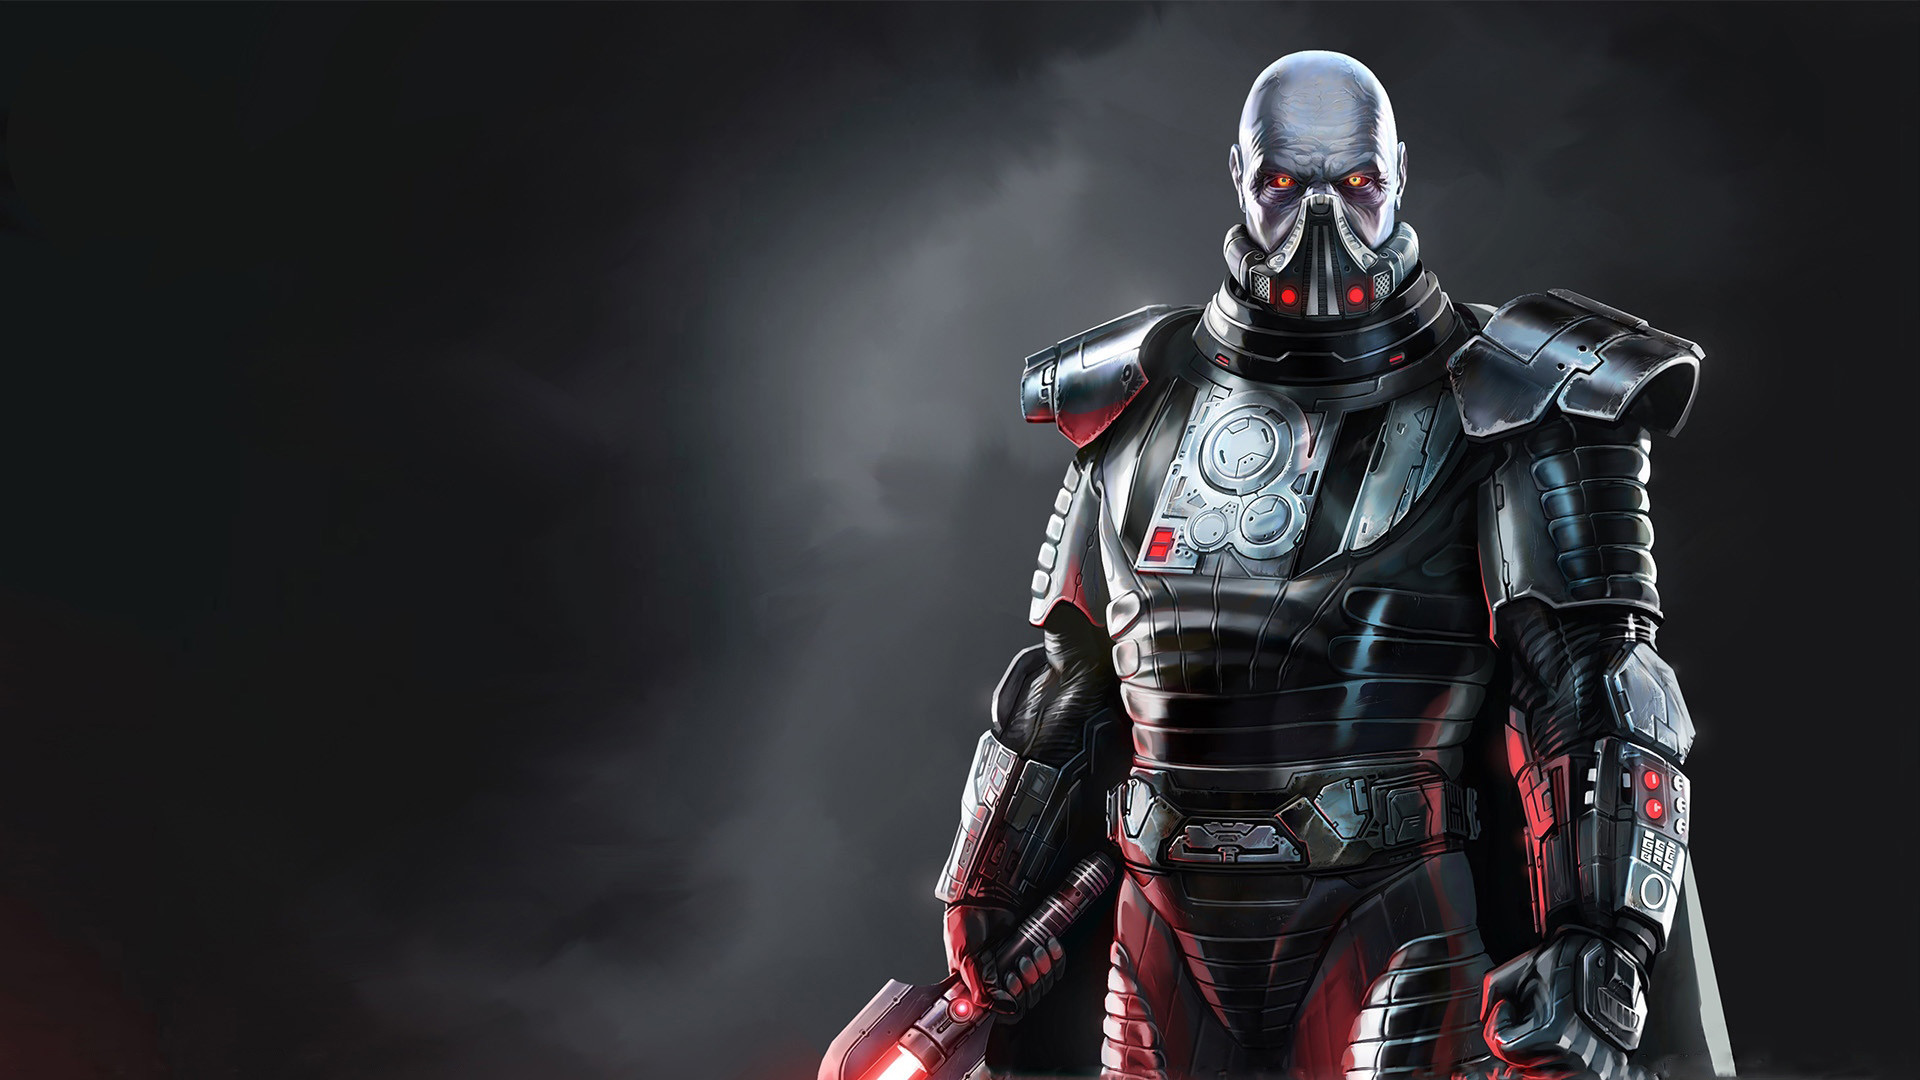 Res: 1920x1080, Image - Star-Wars-The-Old-Republic-Game-Wallpaper-